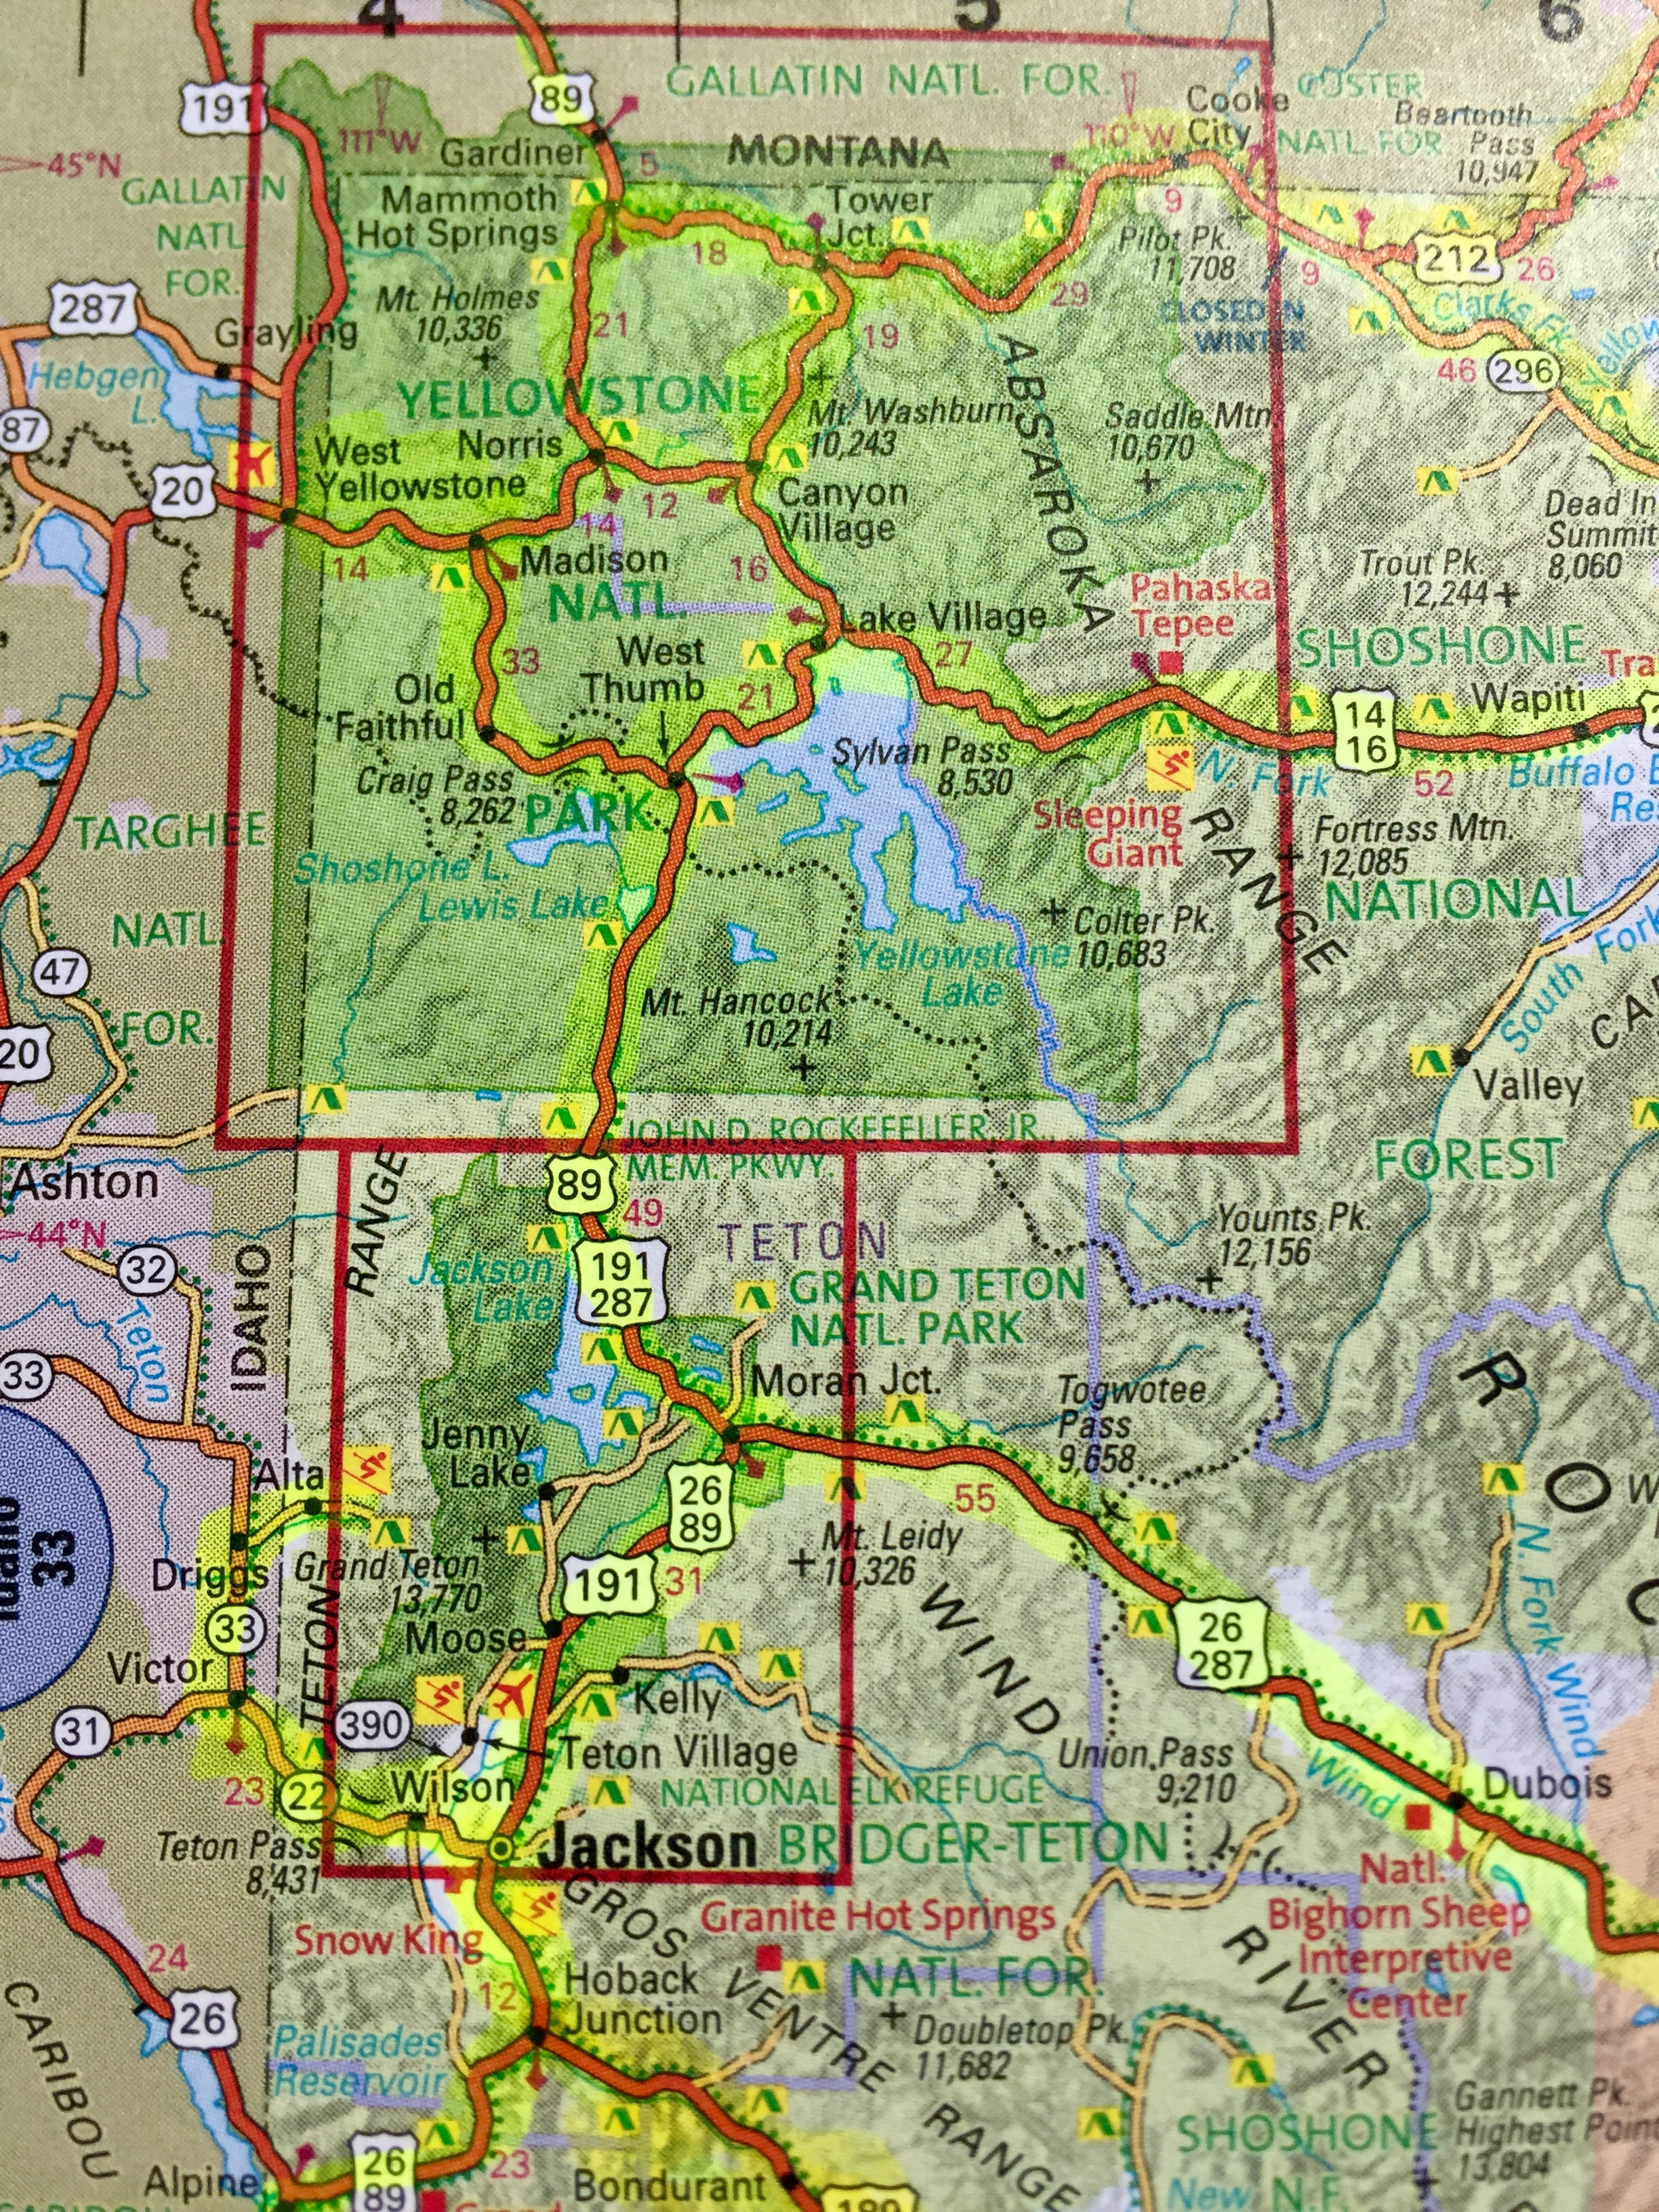 atlas view map of Jackson Hole and Yellowstone area